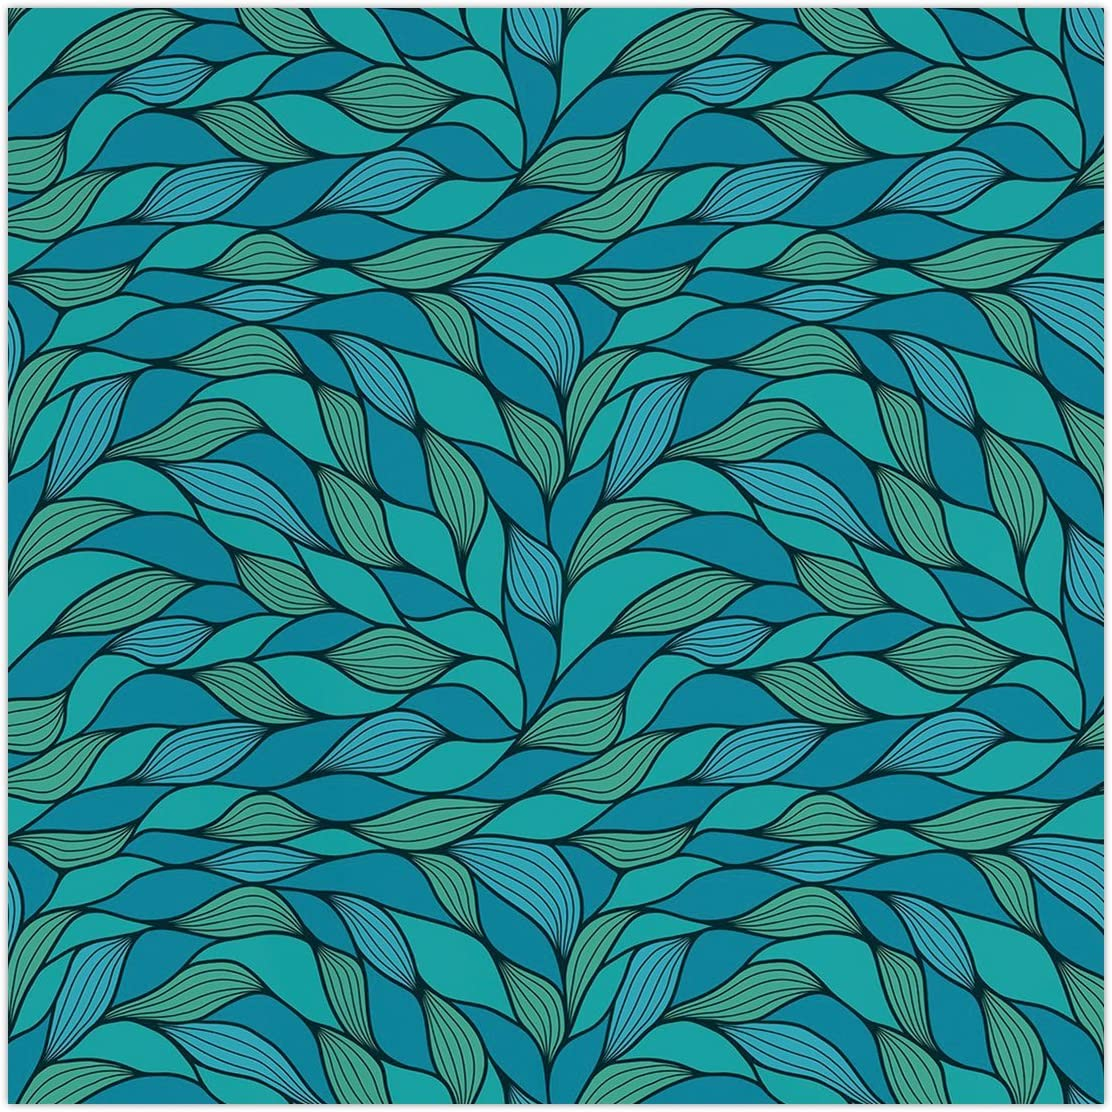 Polyester Square Tablecloth Teal Abstract Wave Design With Ocean Themed Marine Life Pattern Print Decorative Blue Mint Green Dining Room Kitchen Picnic Table Cloth Cover For Outdoor I Amazon Co Uk Kitchen Home